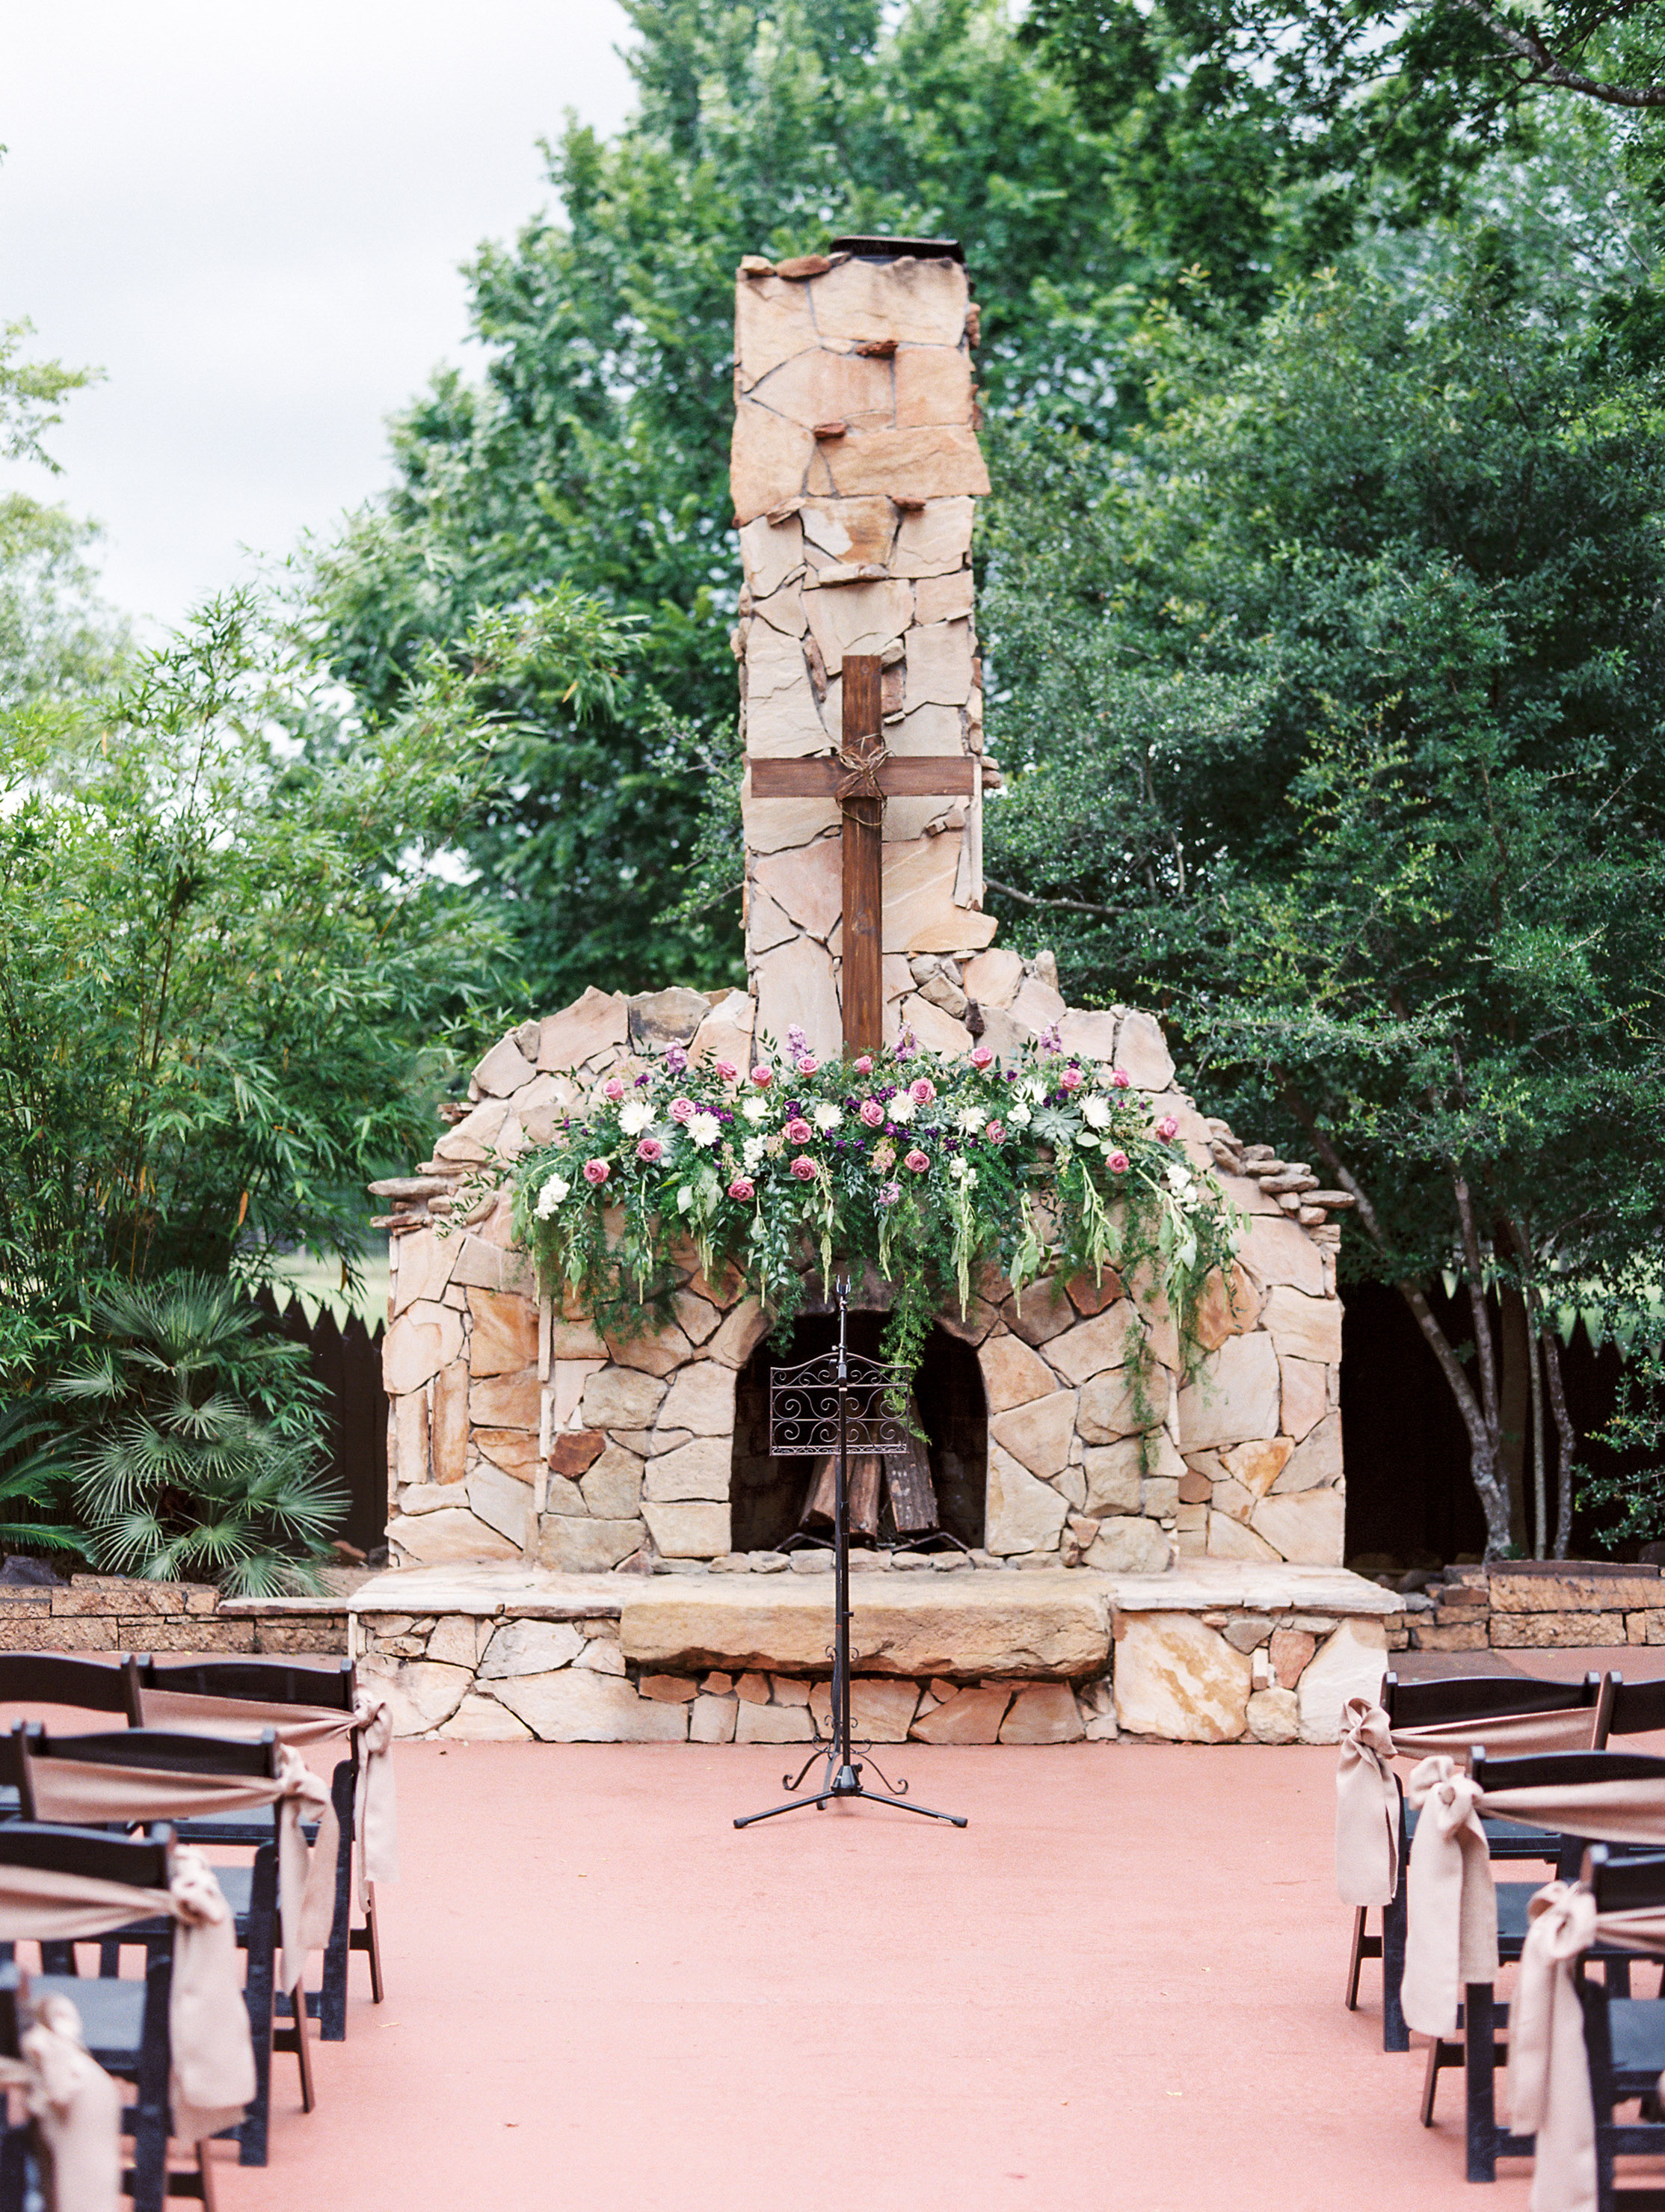 Dana Fernandez Photography Agave Road Agave Estates Houston Texas Wedding Photographer Destination Southwest Film-1.jpg